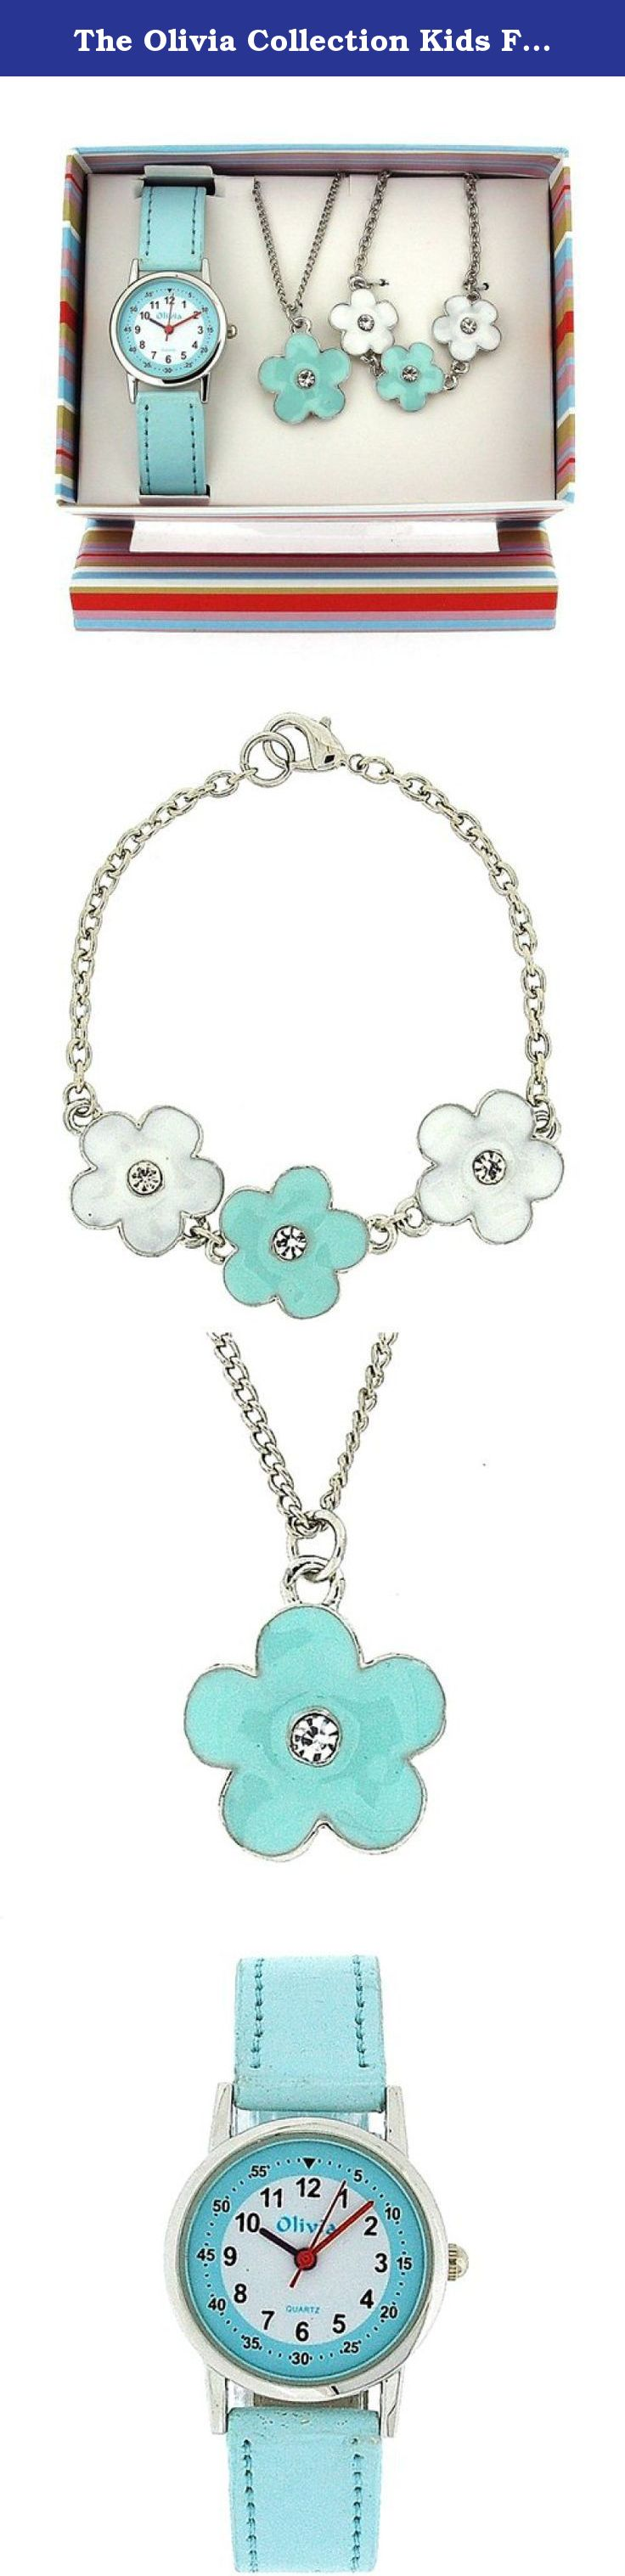 The olivia collection kids flower watch u jewellery gift set for